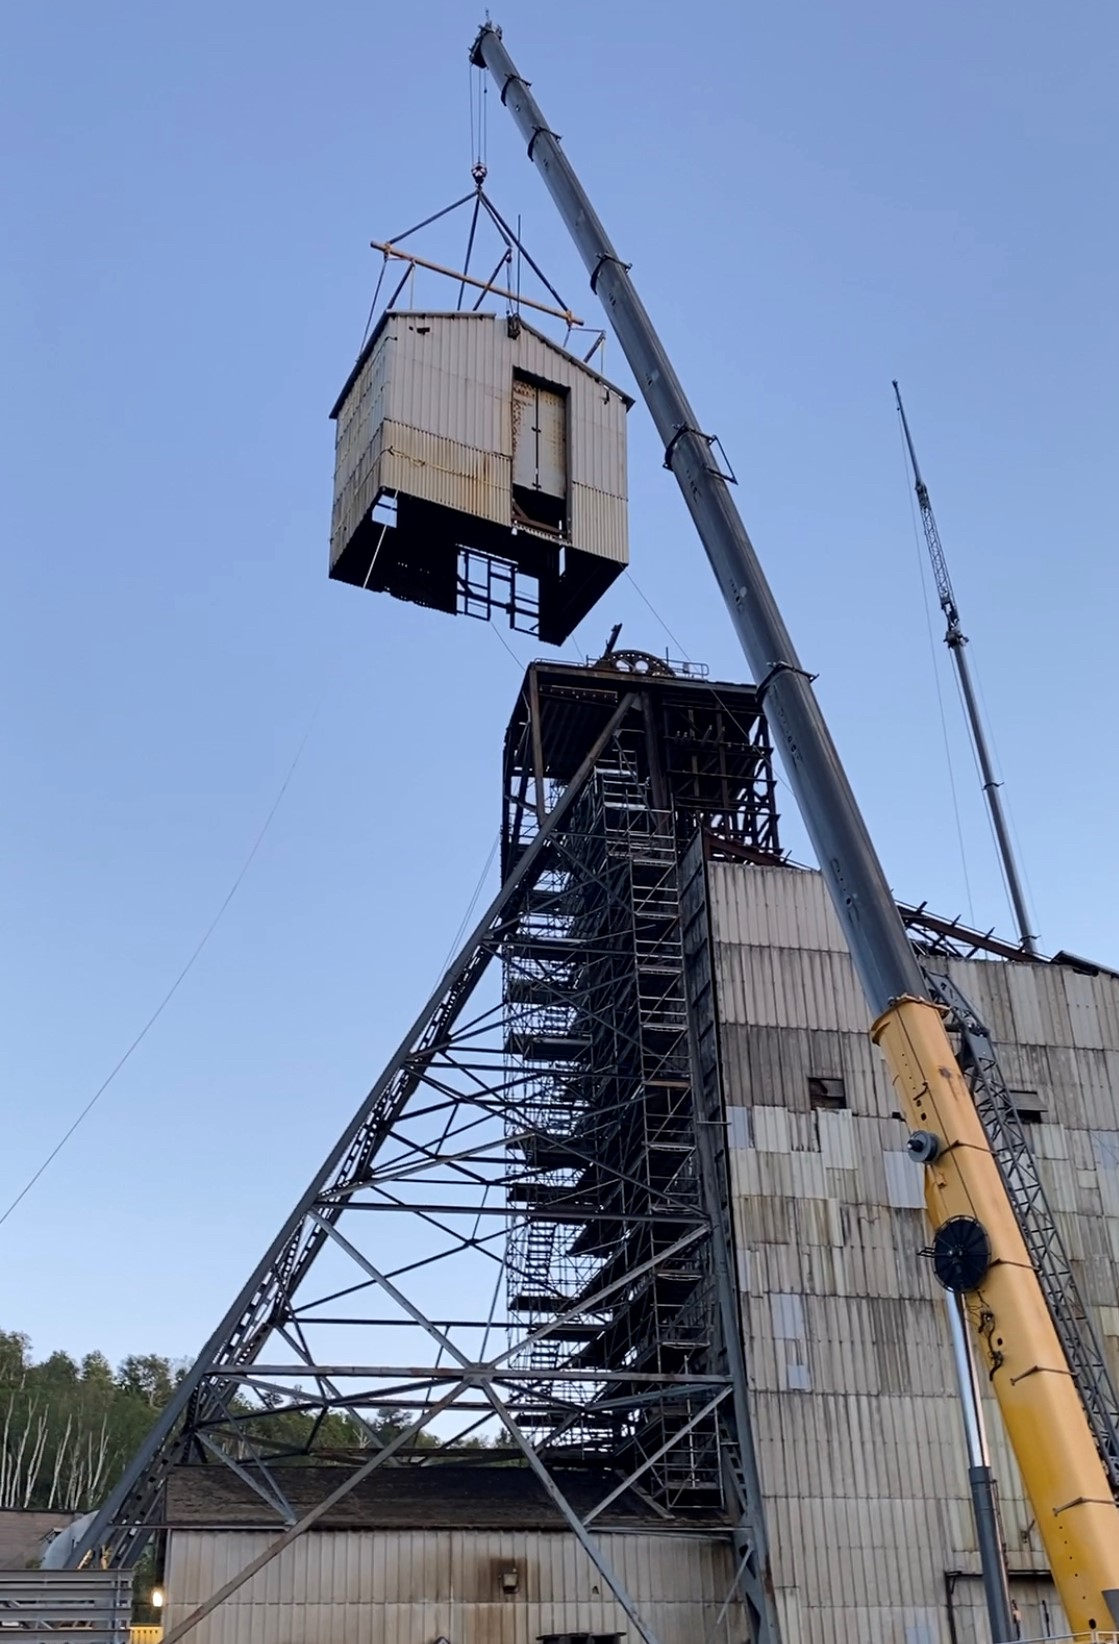 Way to go Danielle Matte with the expertise for the Removal & Replacement of the Compartment Structure and Engineering Support for the removal of the Headframe Sheave House, Sheave Wheels and Sheave Deck!